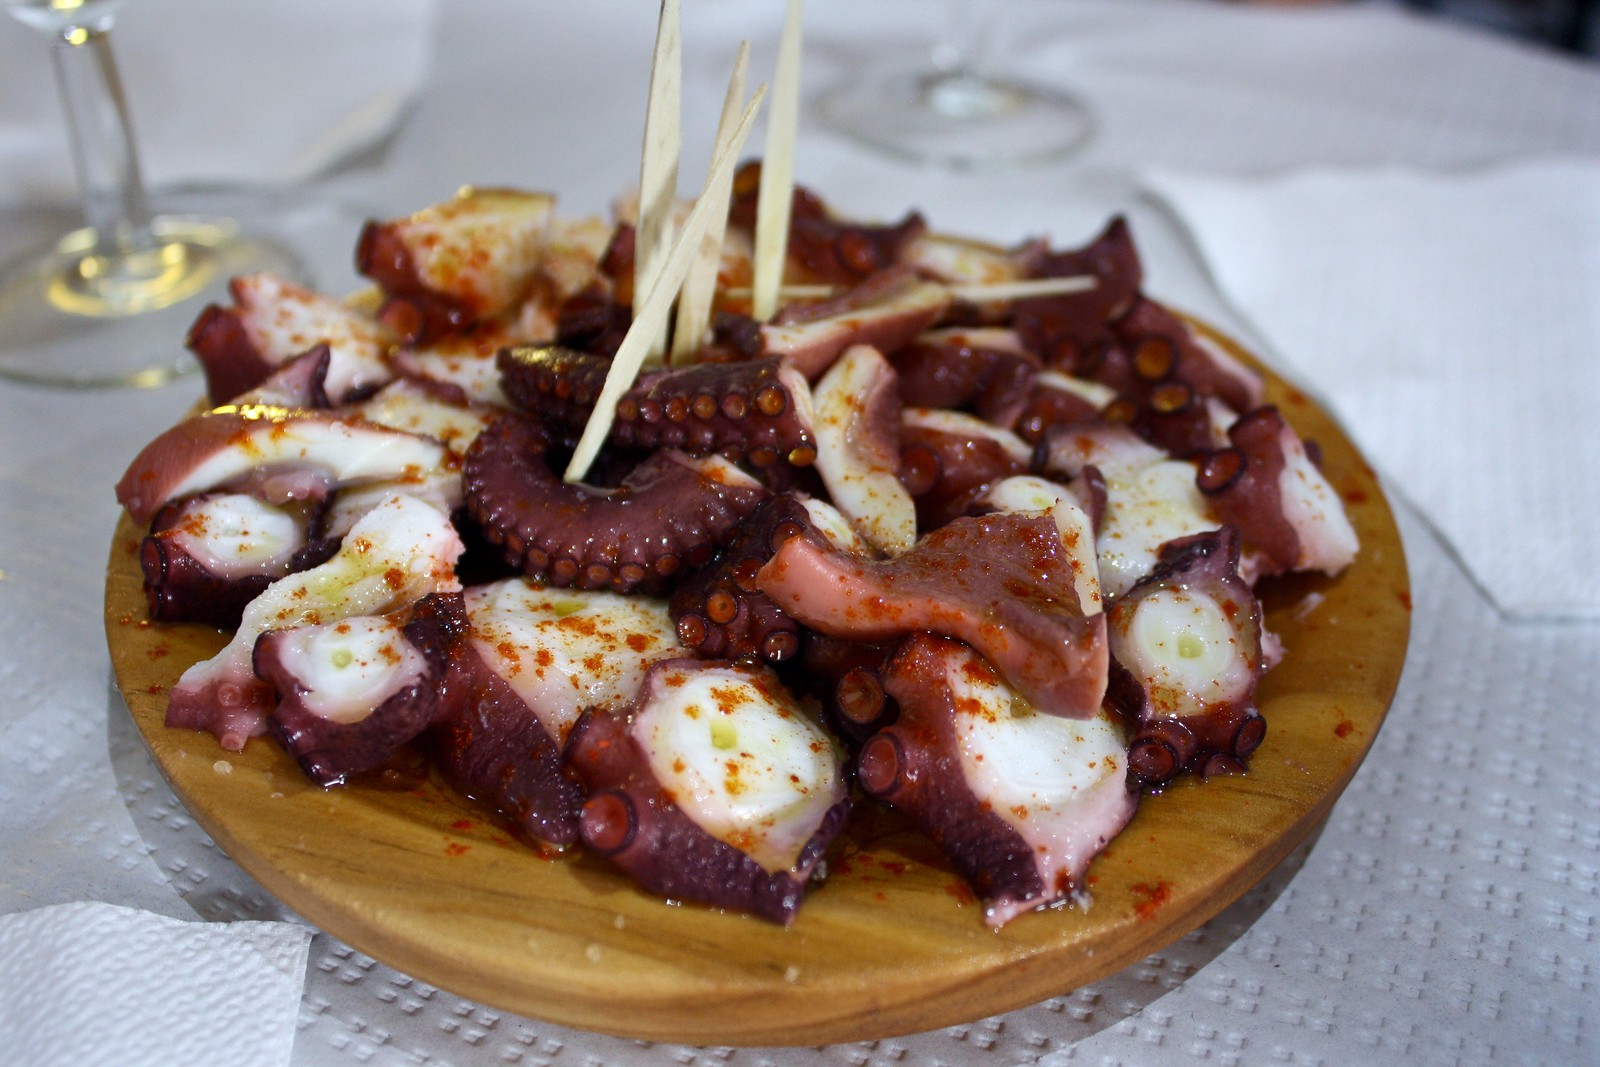 Boiled octopus on a wooden plate